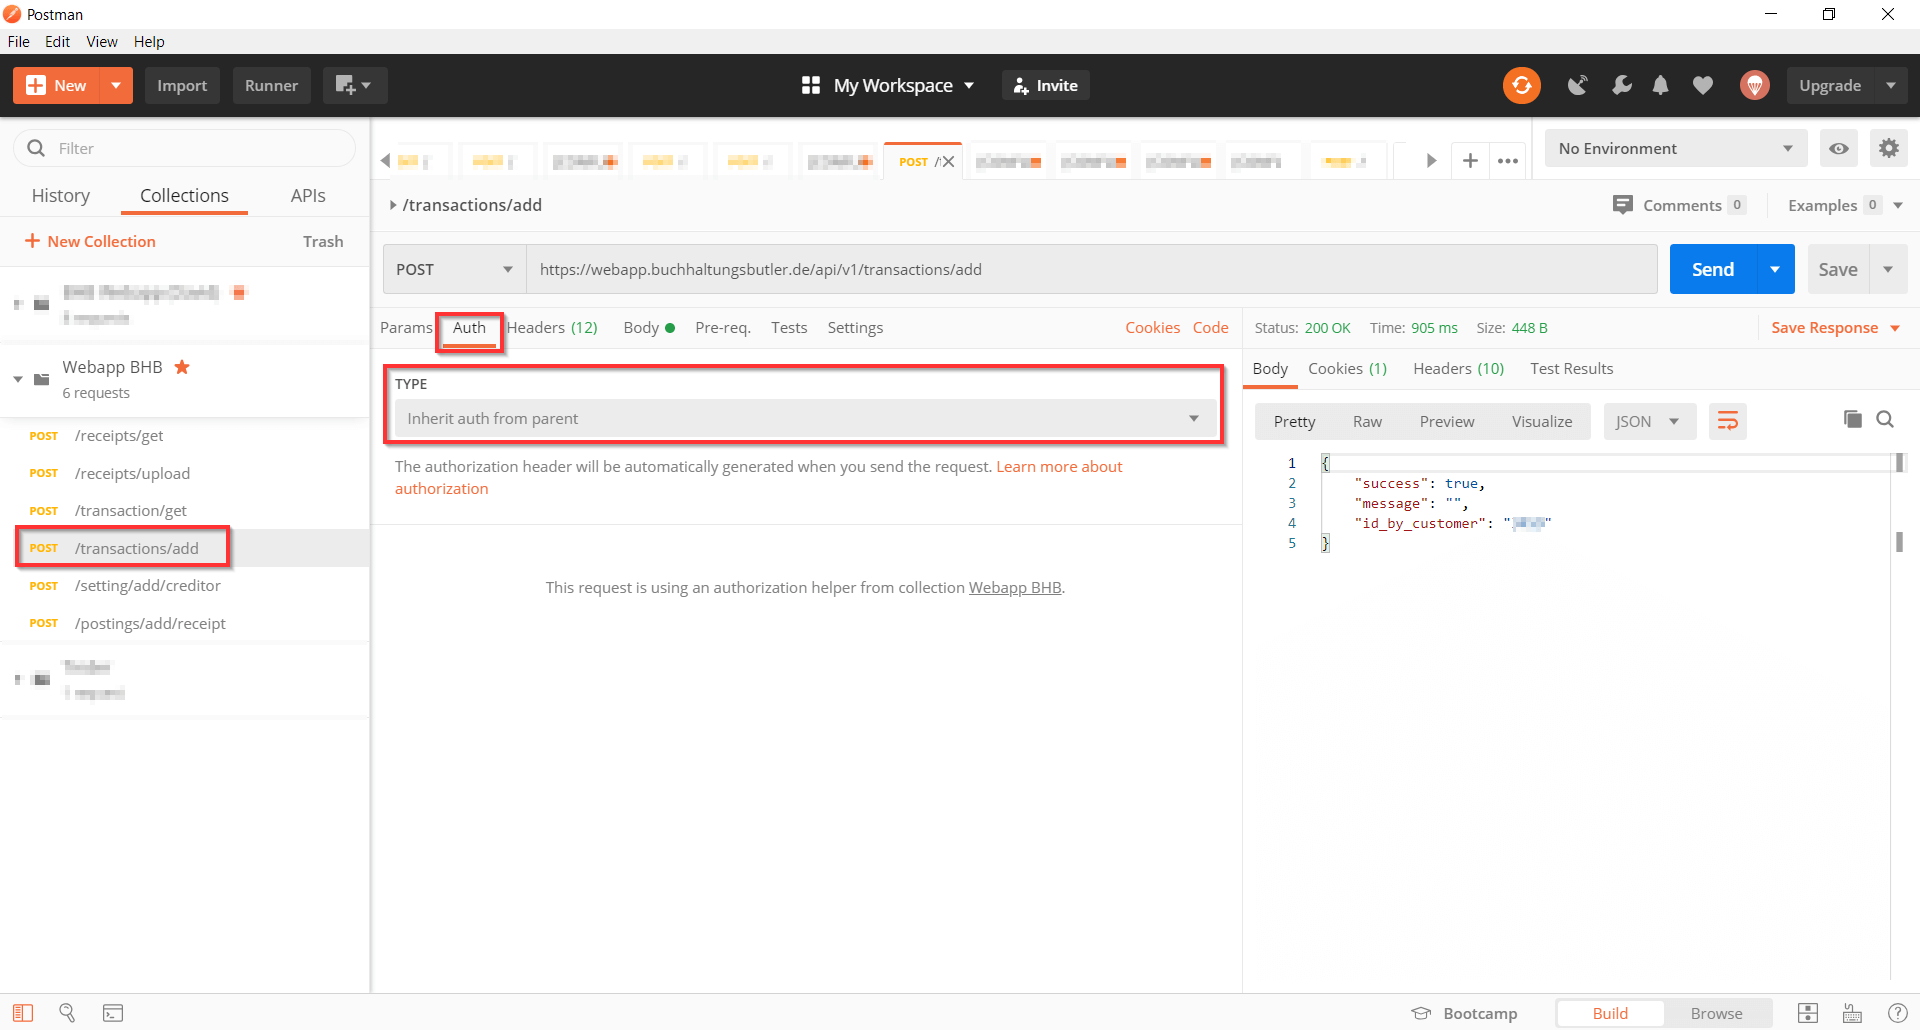 Postman testing Api Requests inherit Auth from Screenshot 3